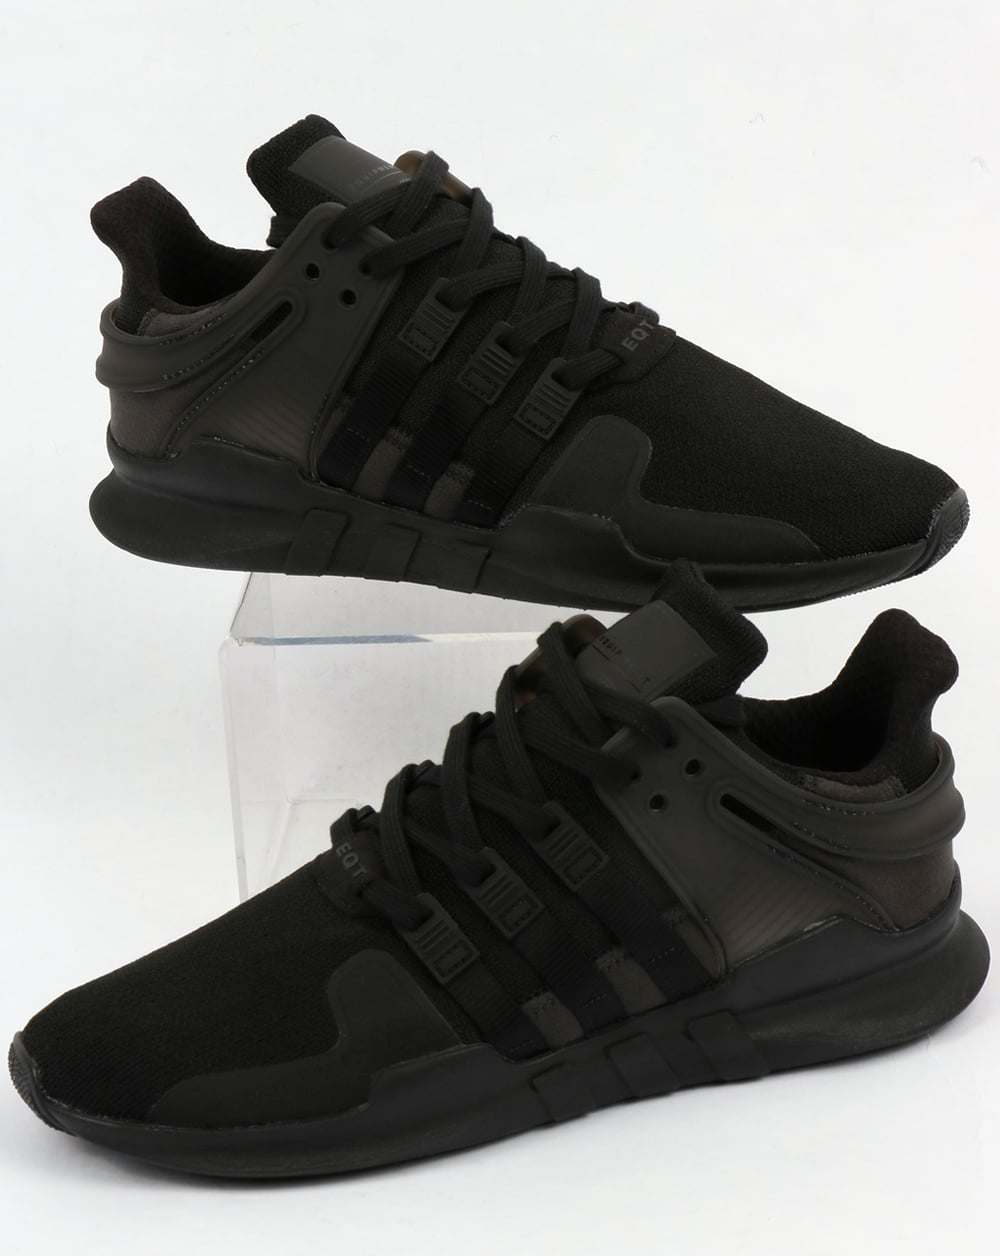 quality design 9db1c c035c Adidas EQT Support ADV Trainers Black